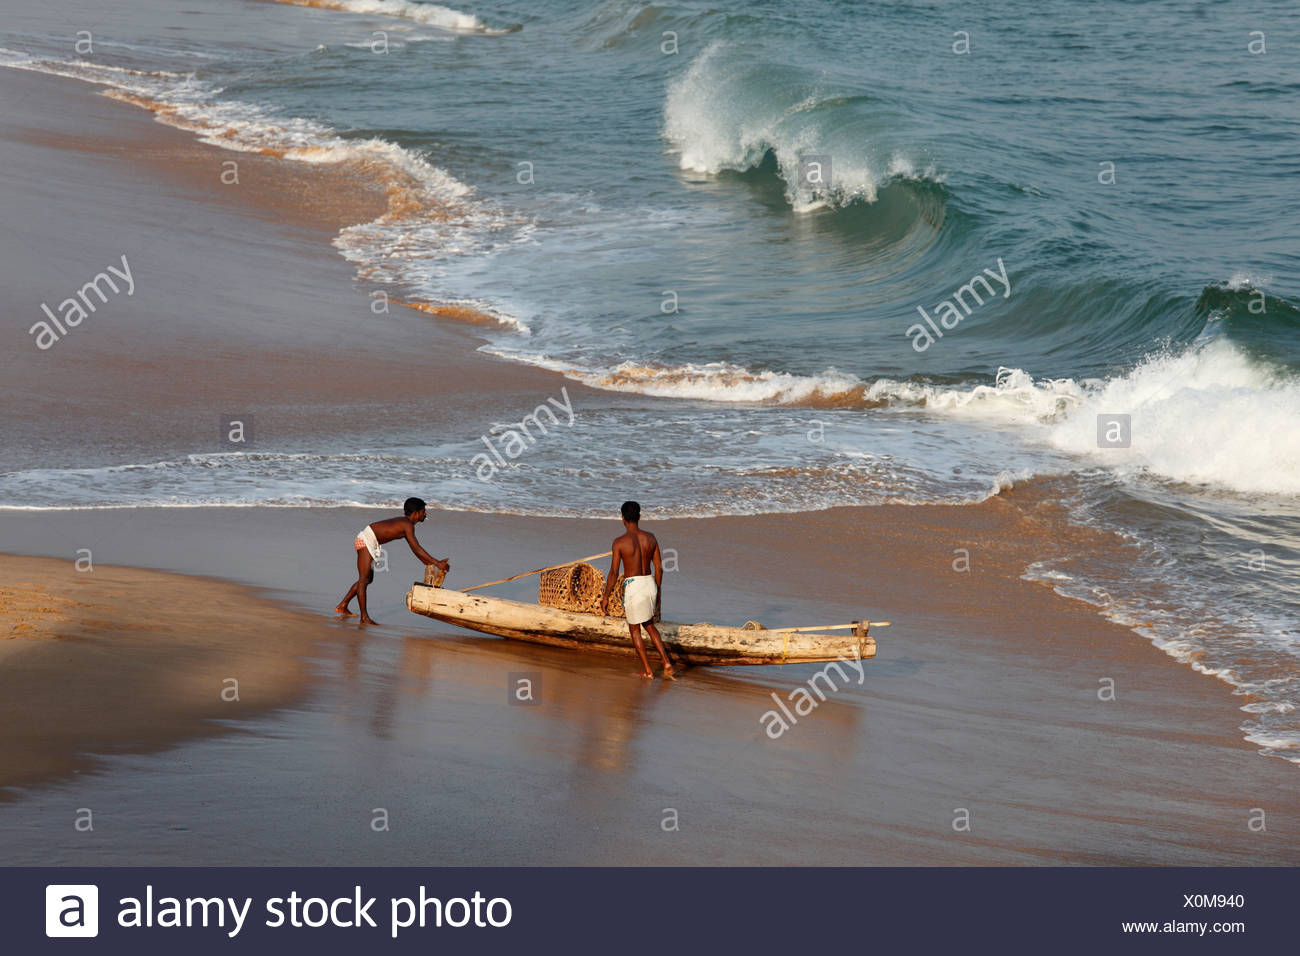 Two locals with a simple fishing boat on a beach south of Kovalam, Malabar Coast, Malabar, Kerala, southern India, India, Asia - Stock Image